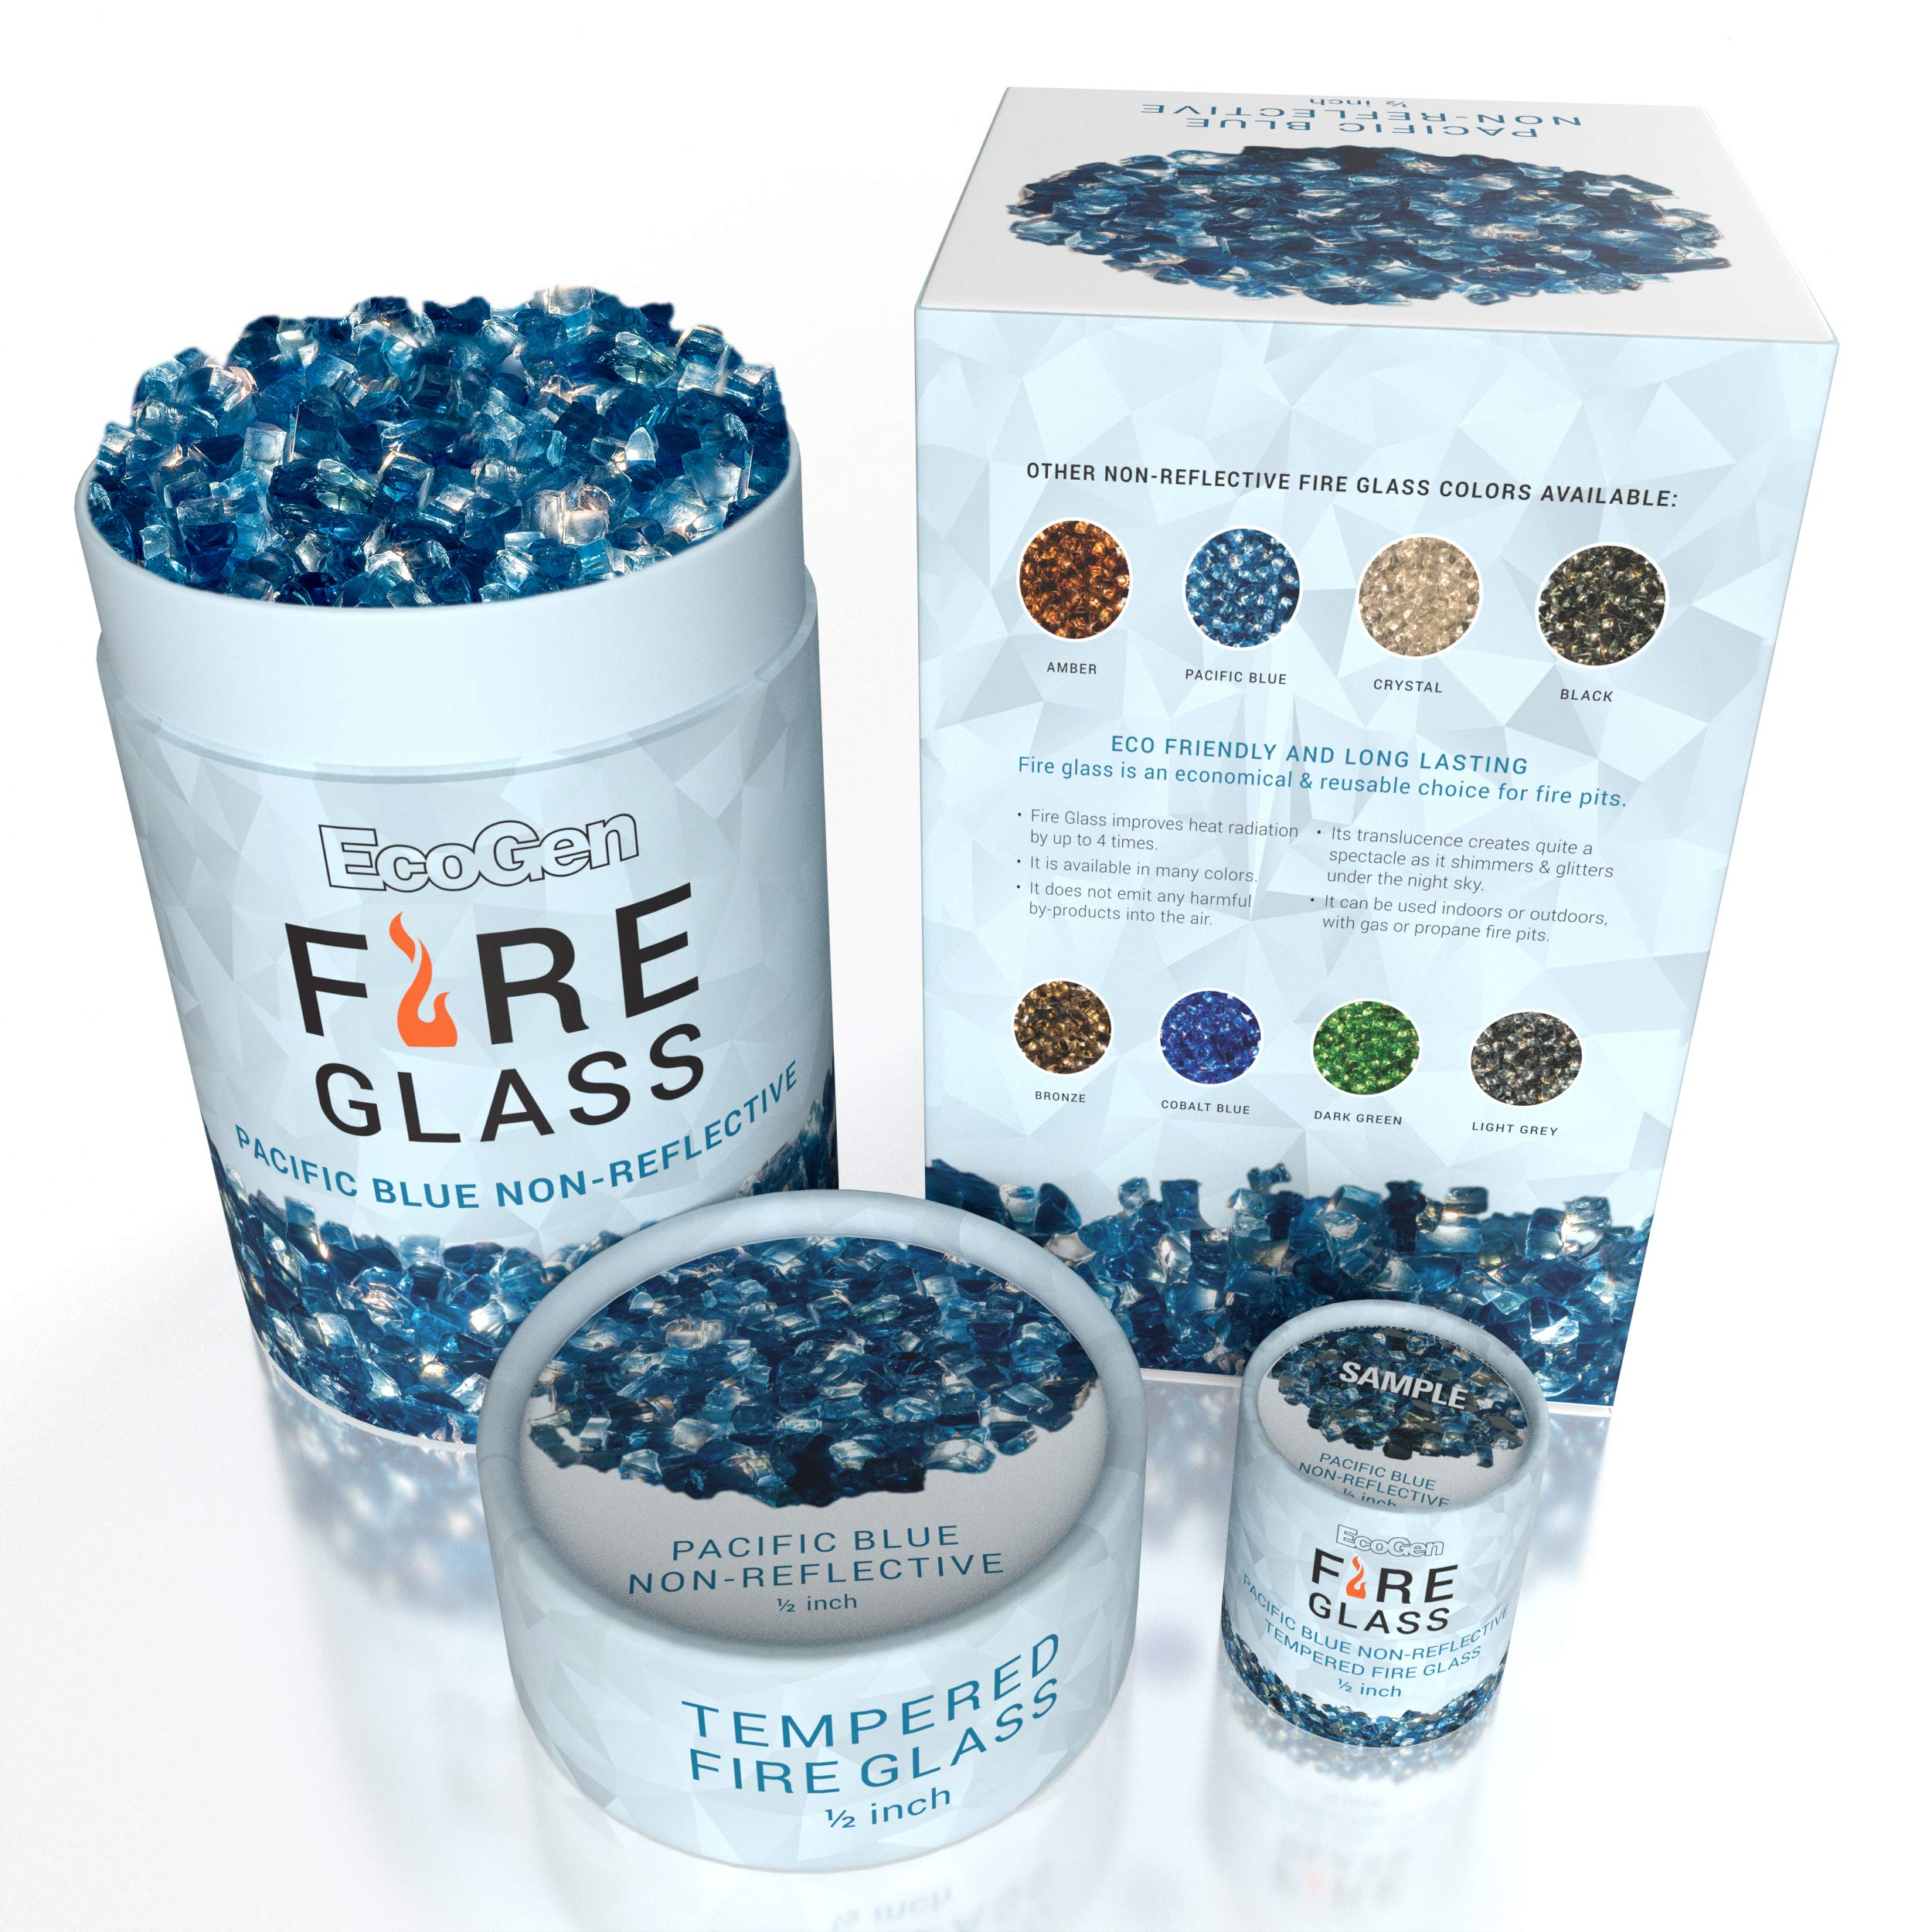 EcoGen Fire Glass Rocks for Outdoor Fire Pits and Indoor Fireplace, Color, Optimal Heat for Propane or Gas, Tempered and Reflective, Eco-Friendly Packaging, Pacific Blue 1/2 inch Non-Reflective 12 lbs